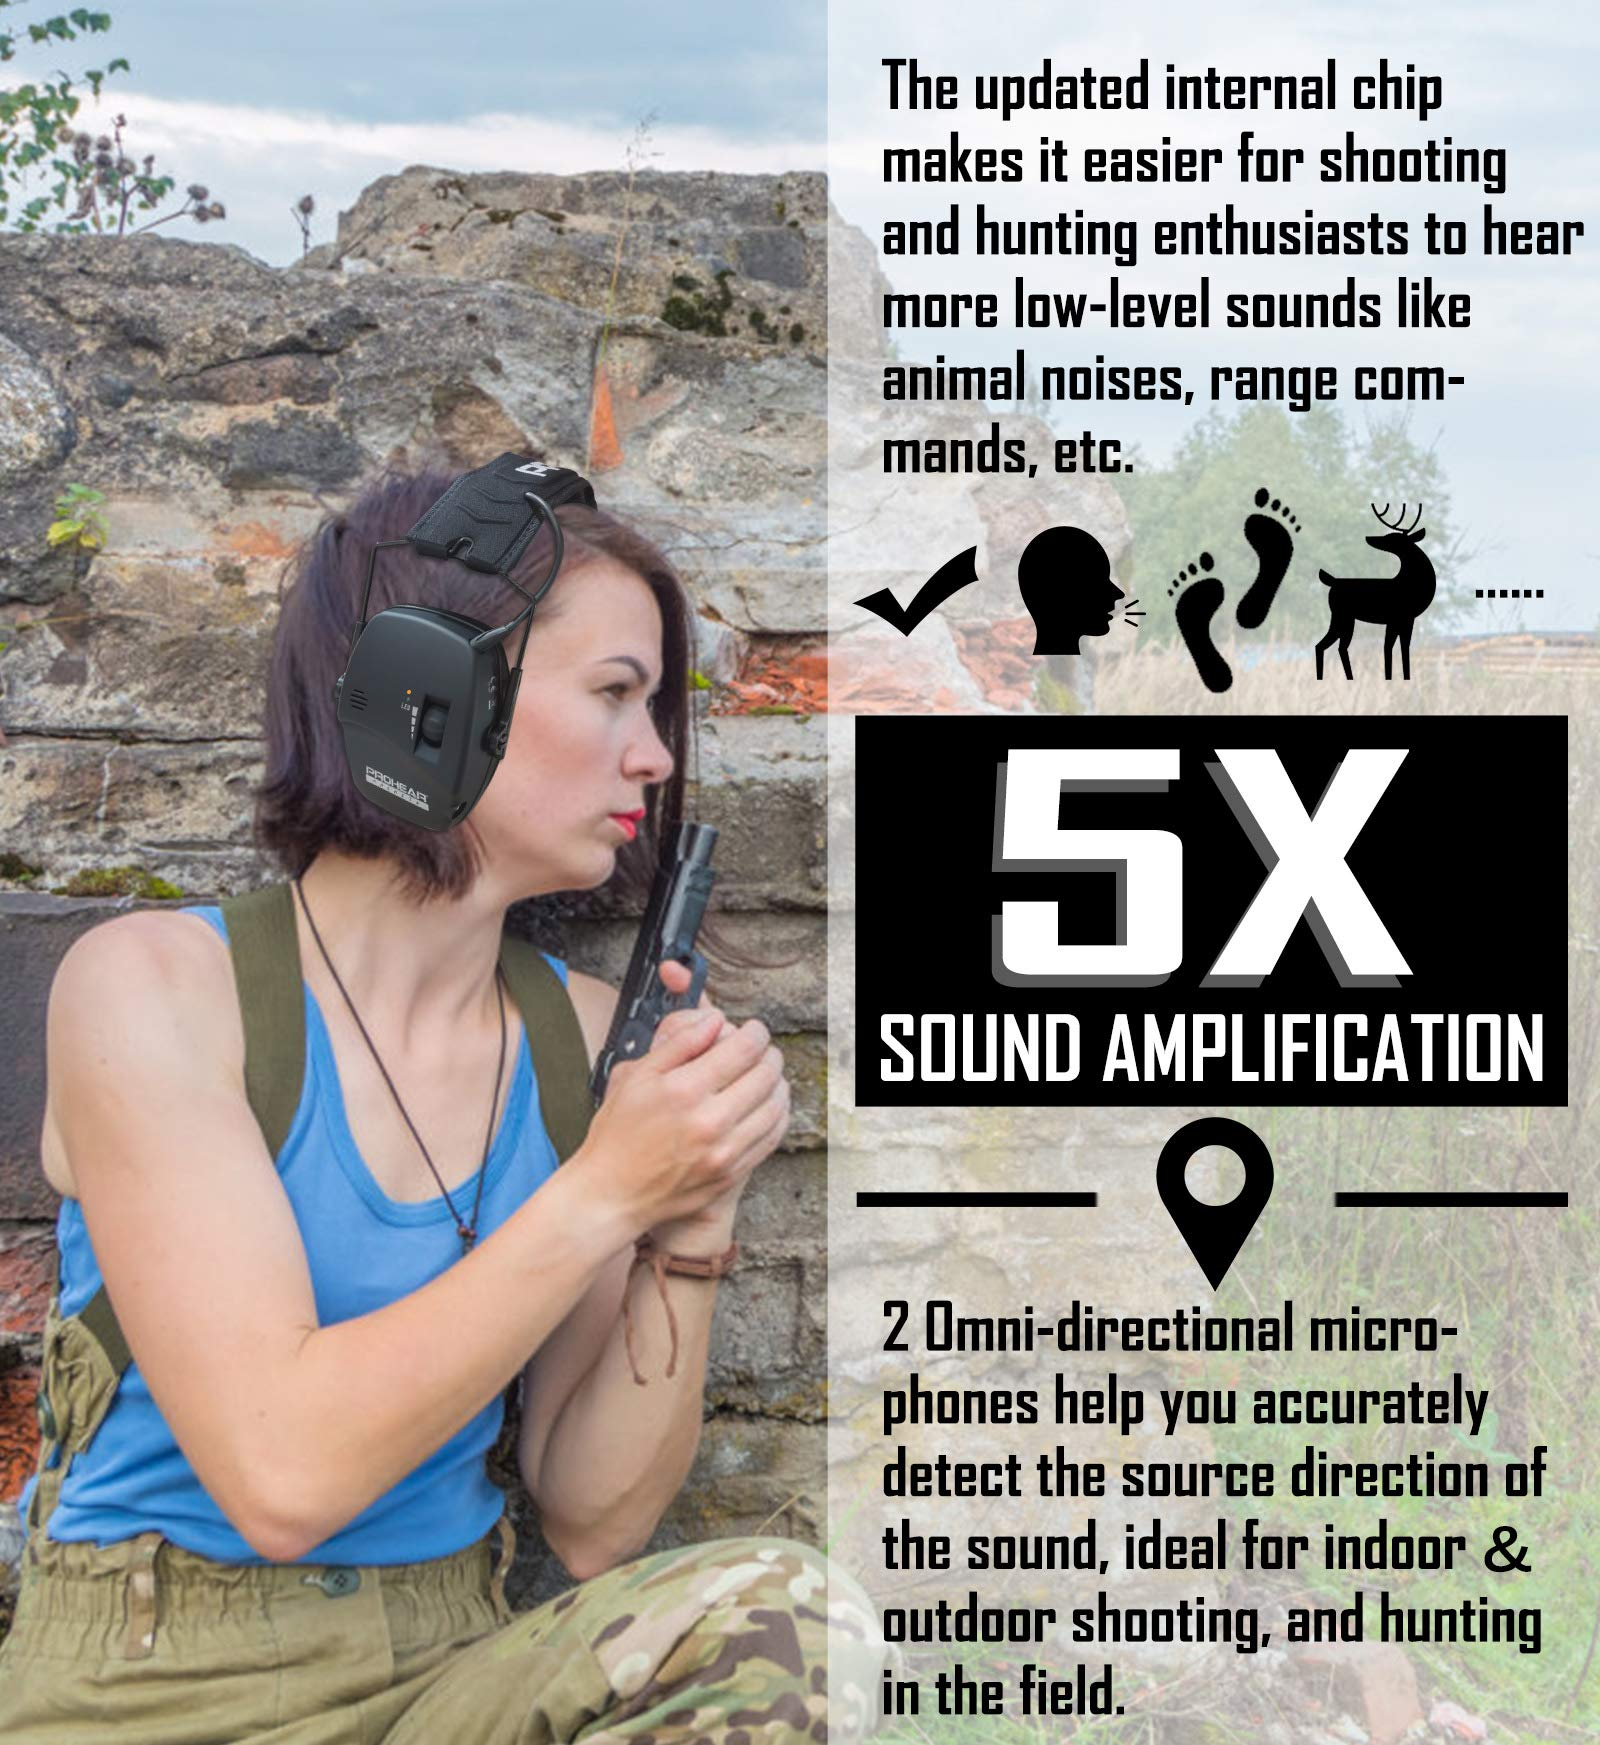 PROHEAR 036 Digital Electronic Shooting Ear Protection Muffs with GEP02 Gel Ear Pads, Hunting Sound Amplification Earmuffs, NRR 23dB Low Profile Hearing Protection for Gun Range - Black